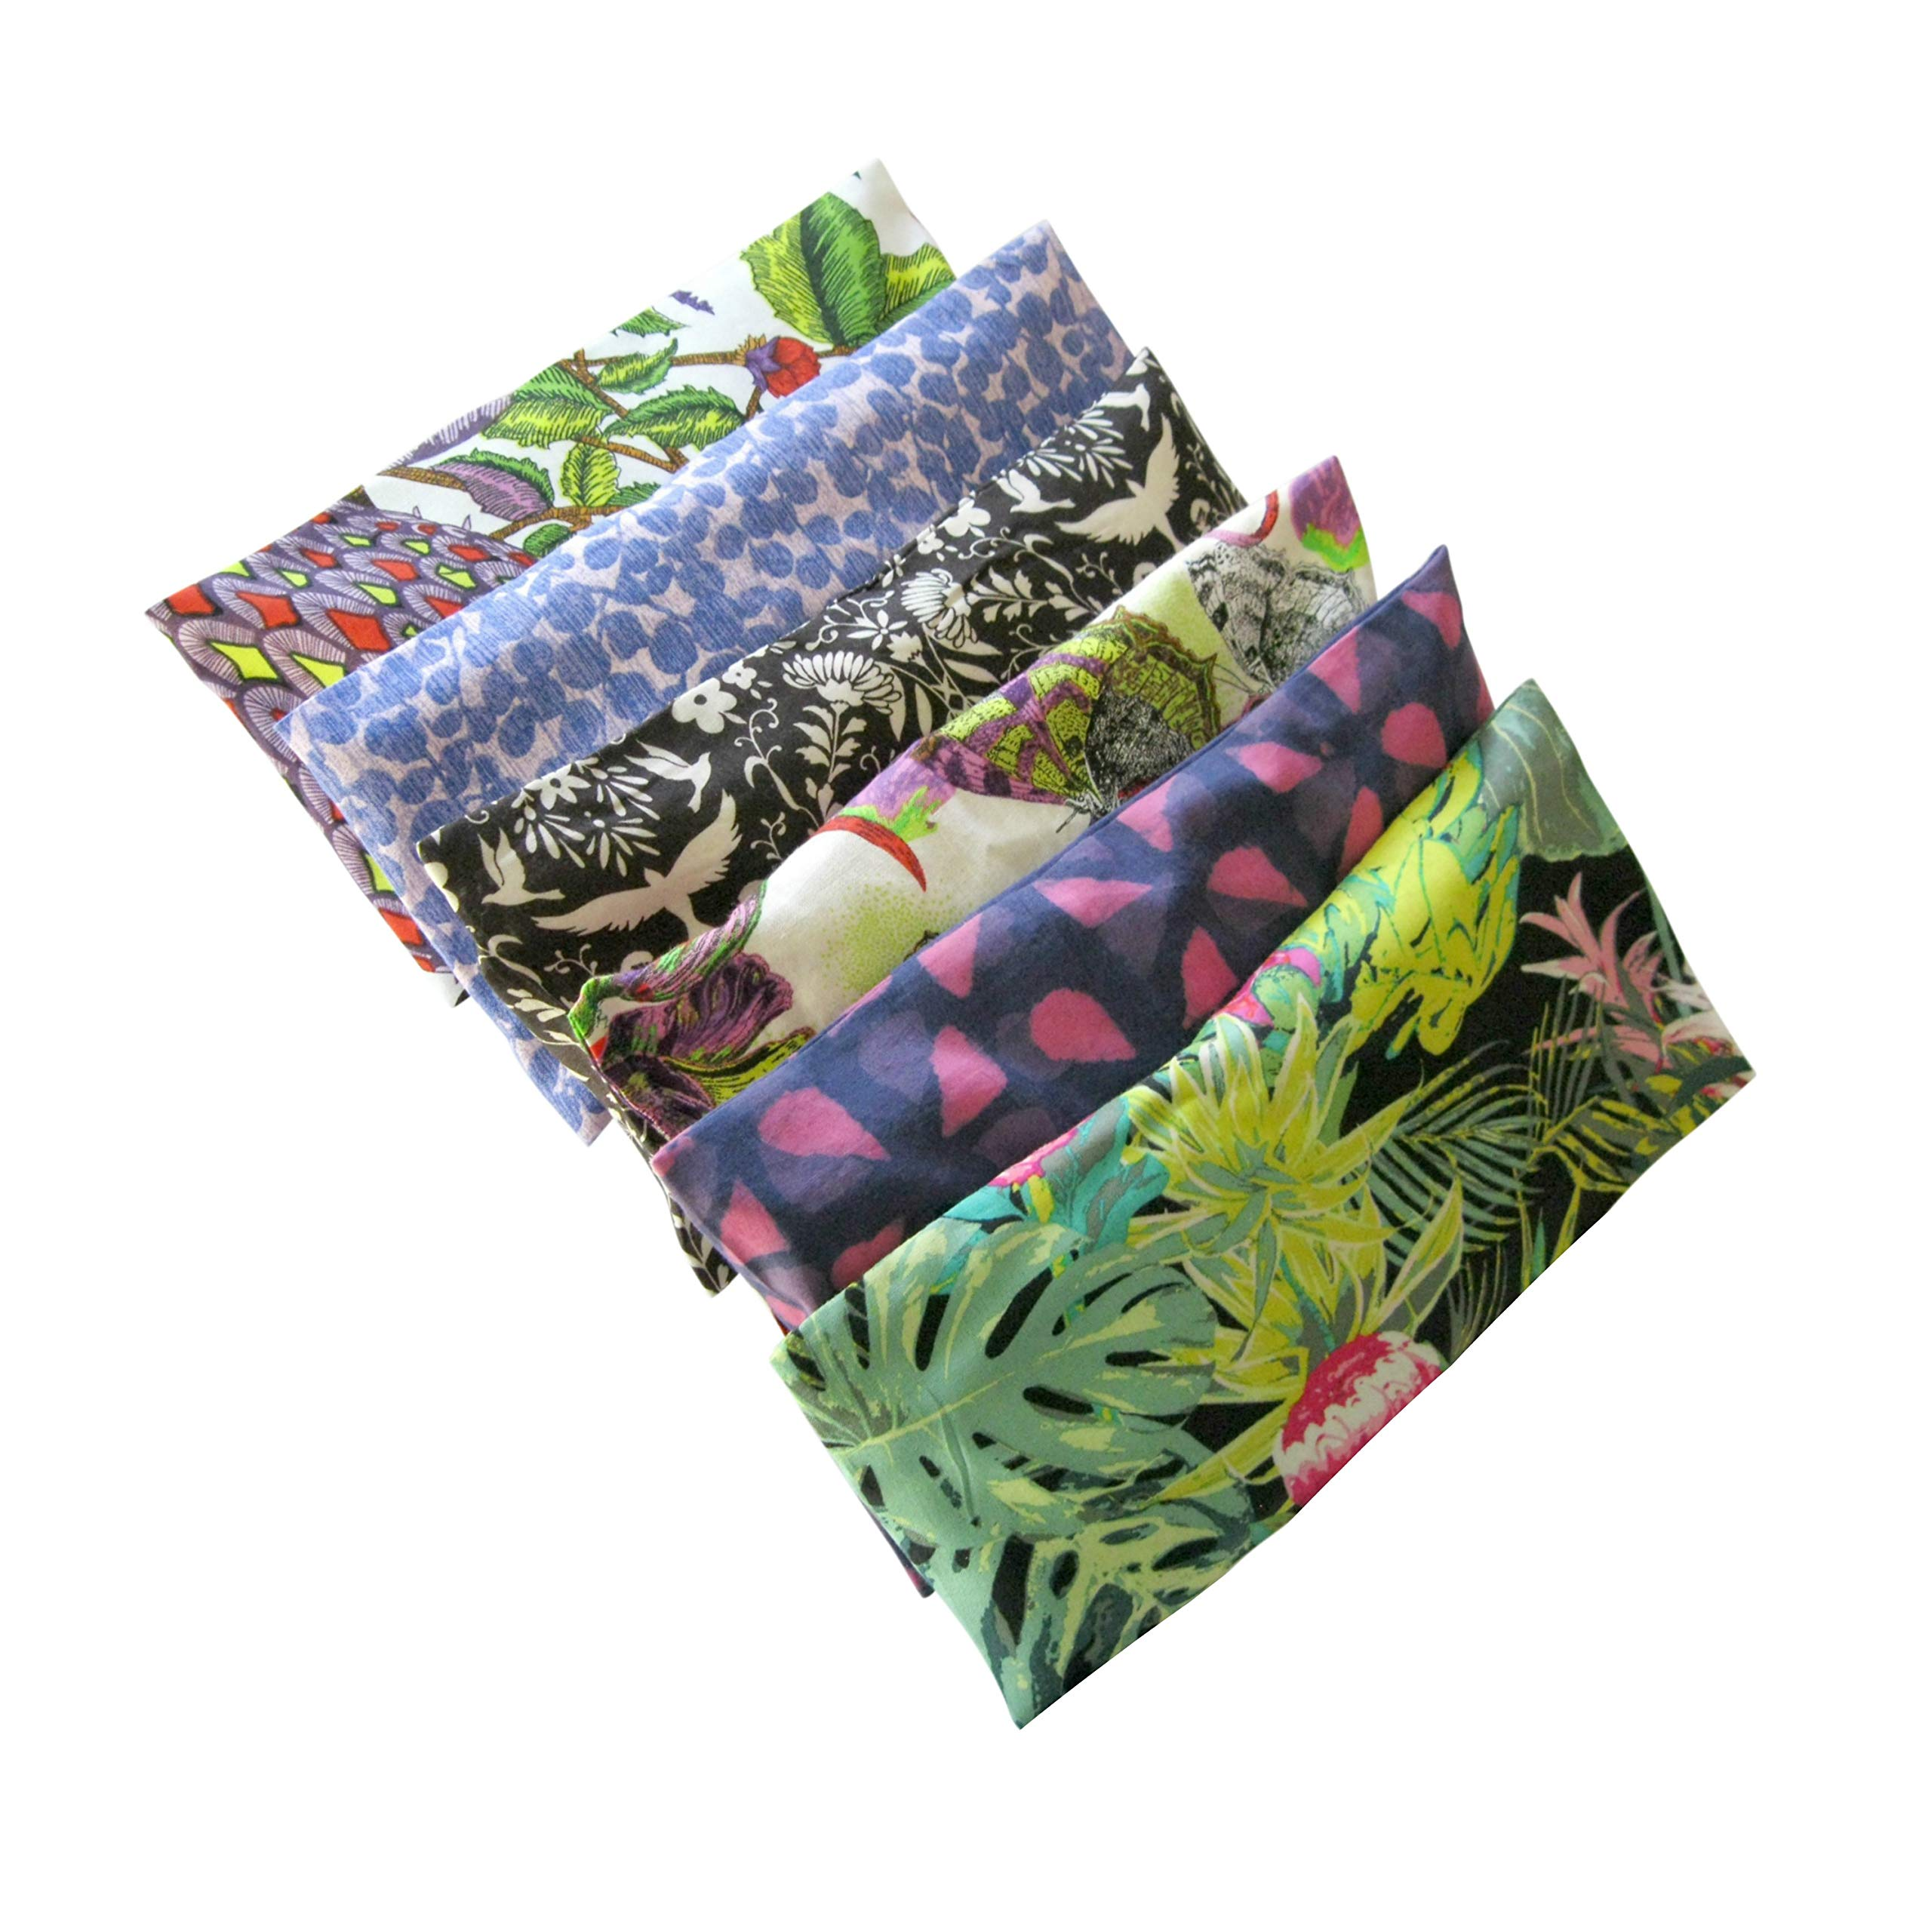 Peacegoods Aromatherapy Eye Pillow - Bundle of (6) - 4.5 x 9 - Organic Lavender Chamomile Flax Cotton - Removable Cover Washable - green black pink purple bird butterfly flowers leaves by Peacegoods (Image #1)